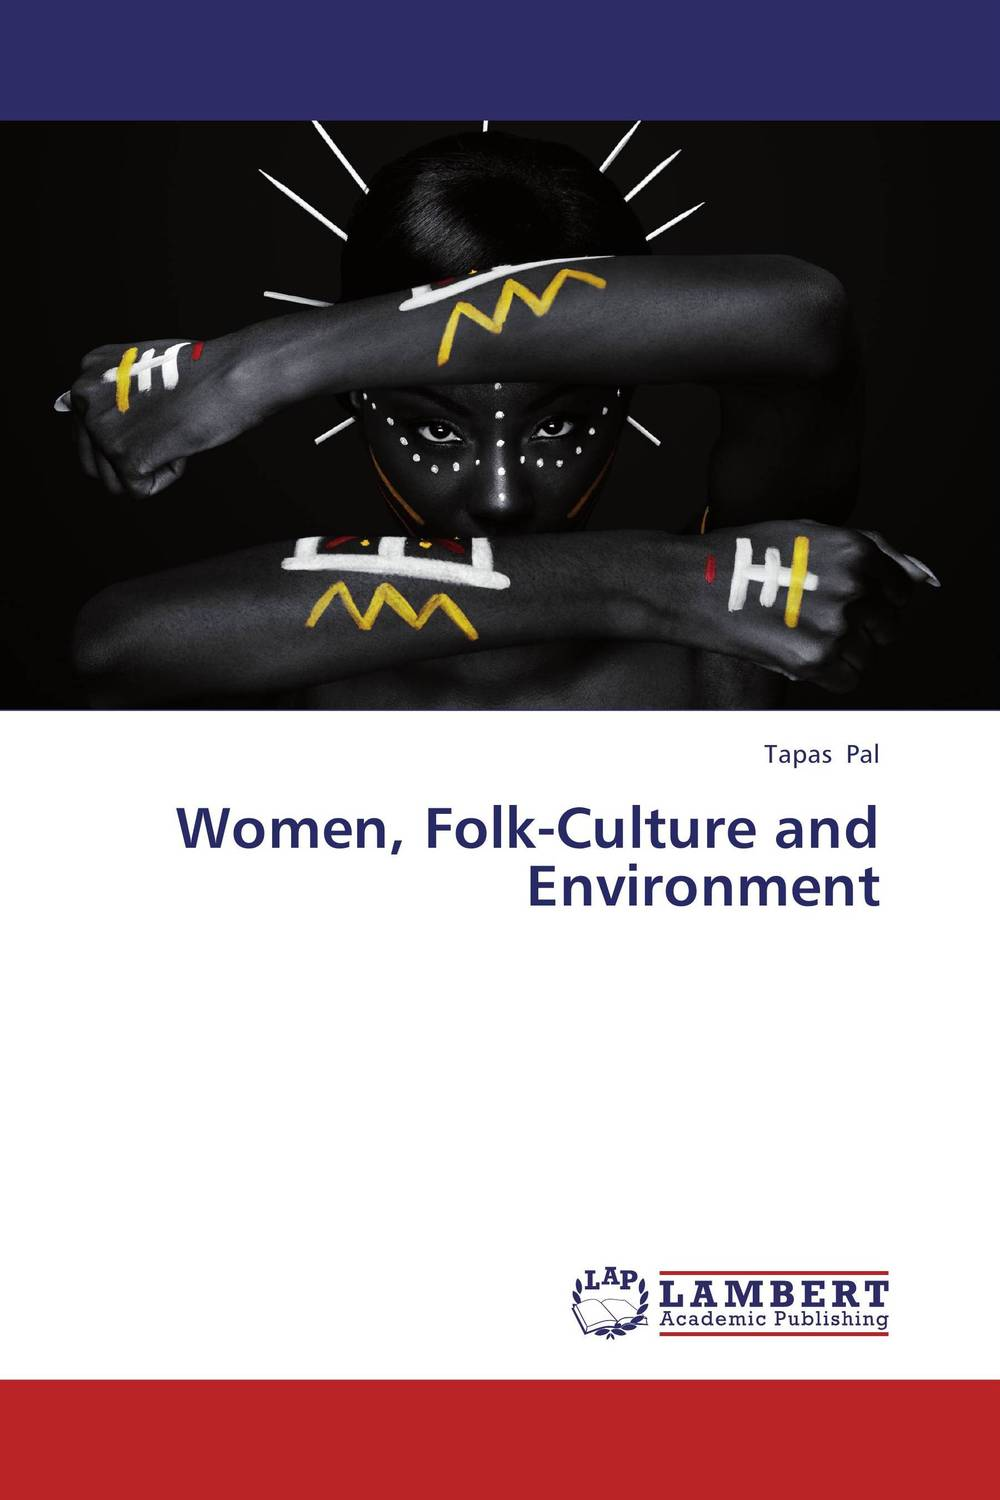 Women, Folk-Culture and Environment сысоев п сысоева л issues in us culture and society амер культура и общество